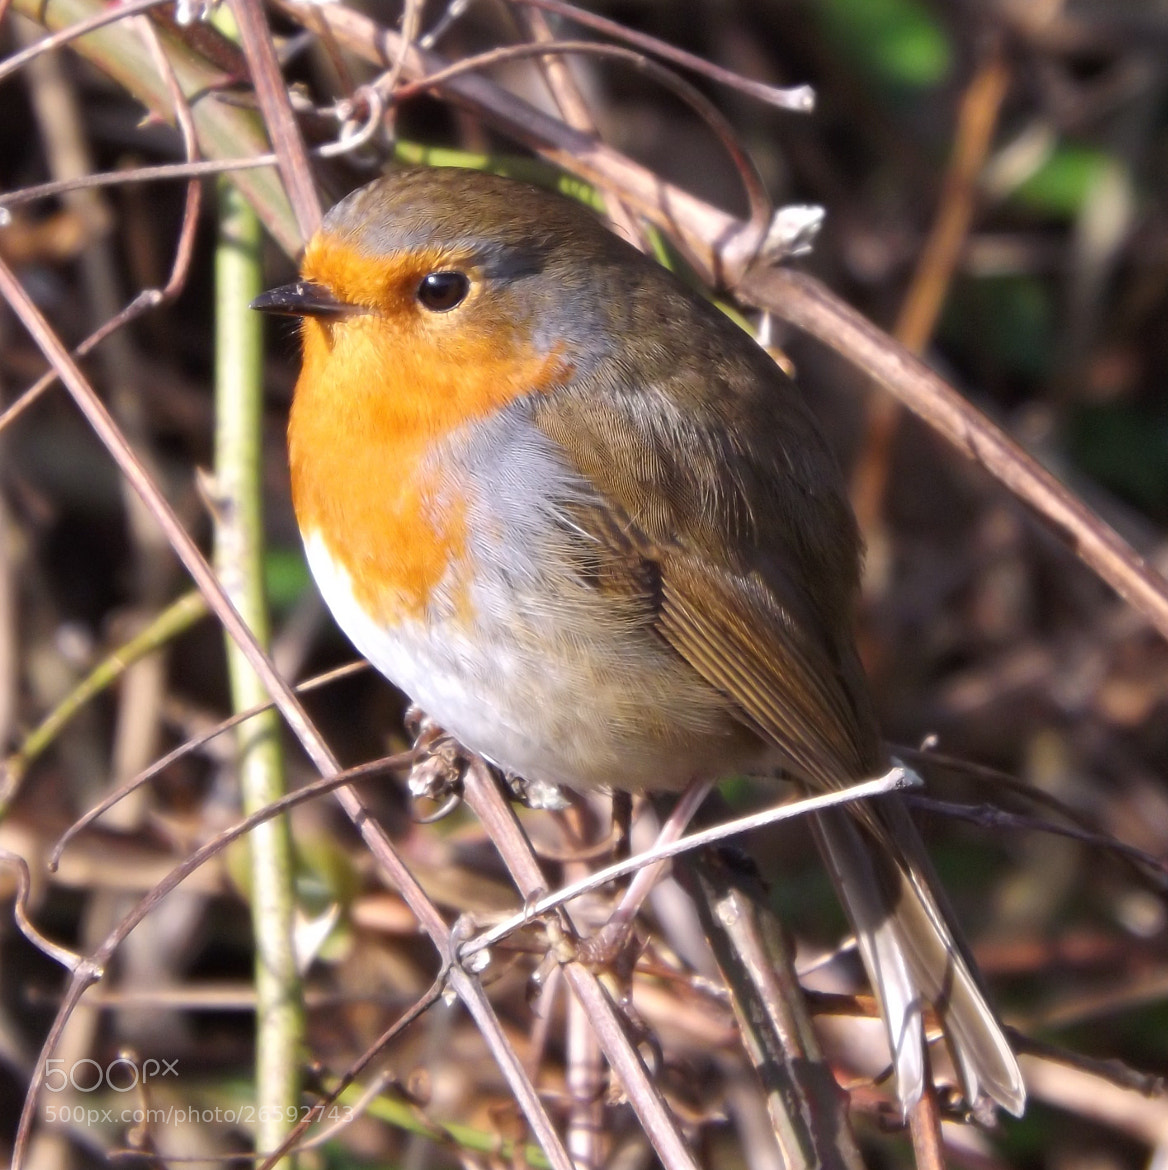 Photograph Robin by Max Rigden on 500px